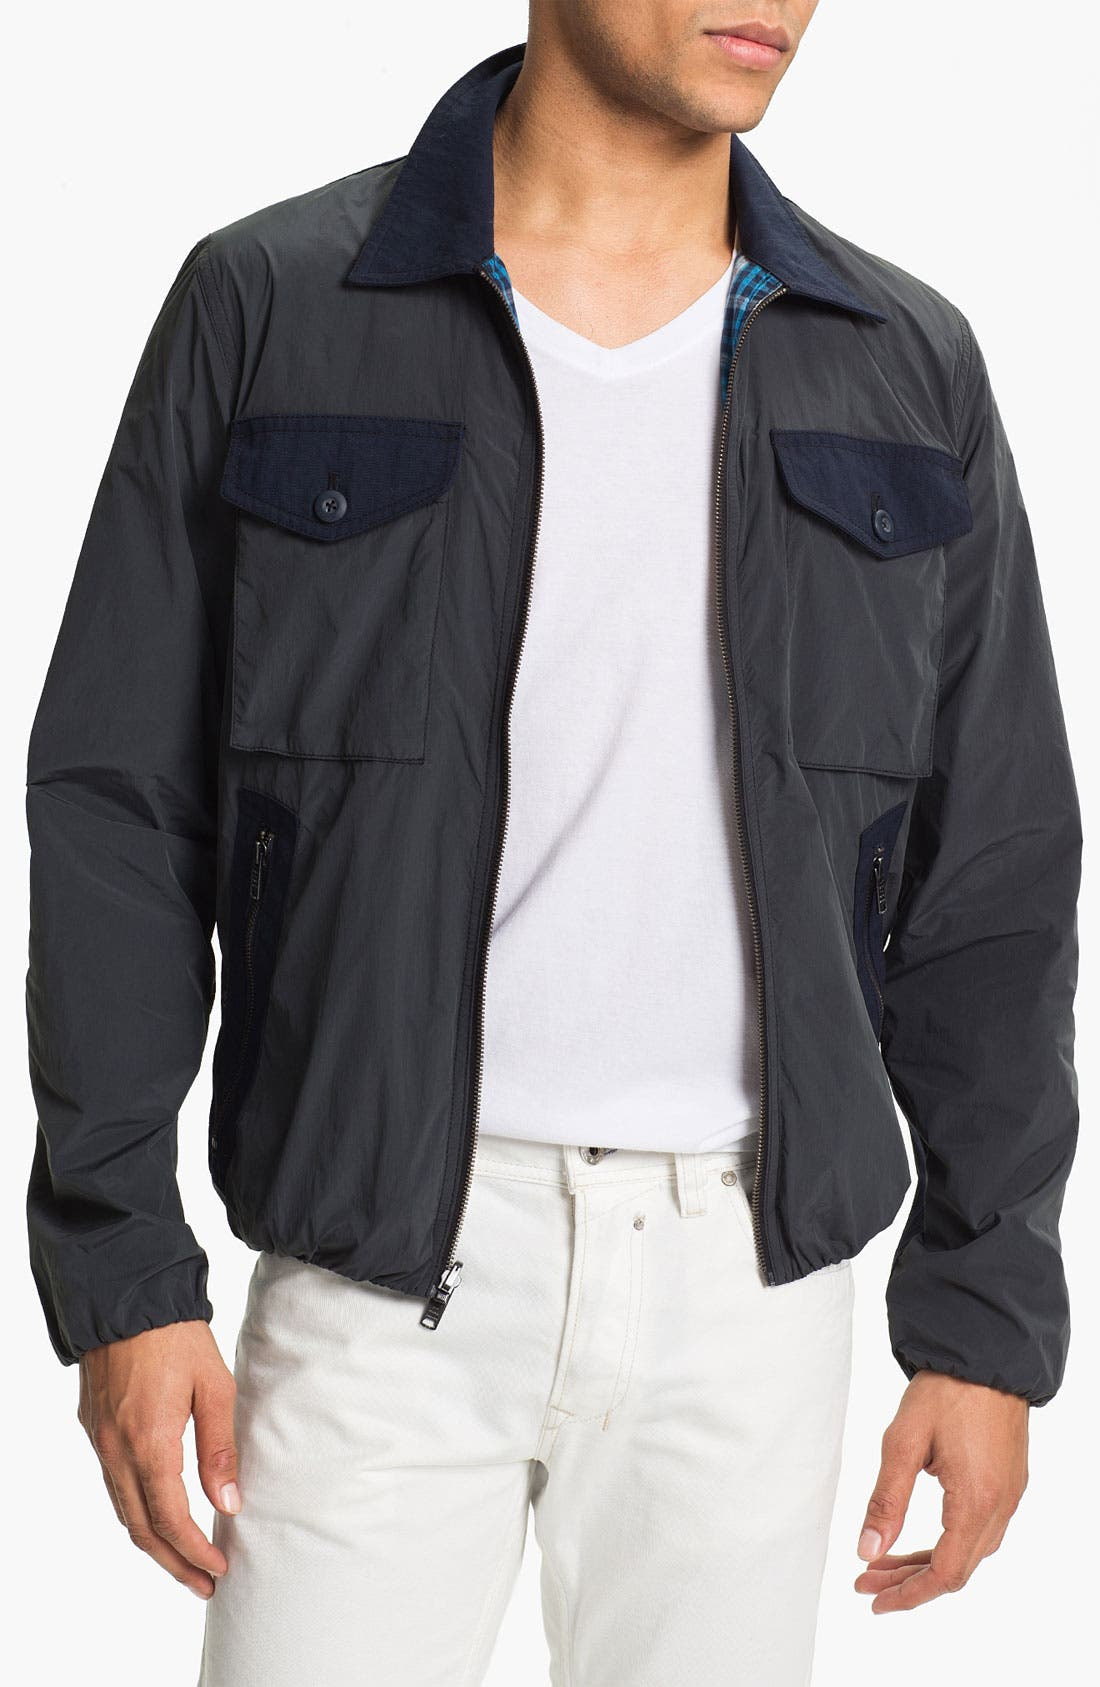 Main Image - MARC BY MARC JACOBS 'Nicholson' Reversible Jacket